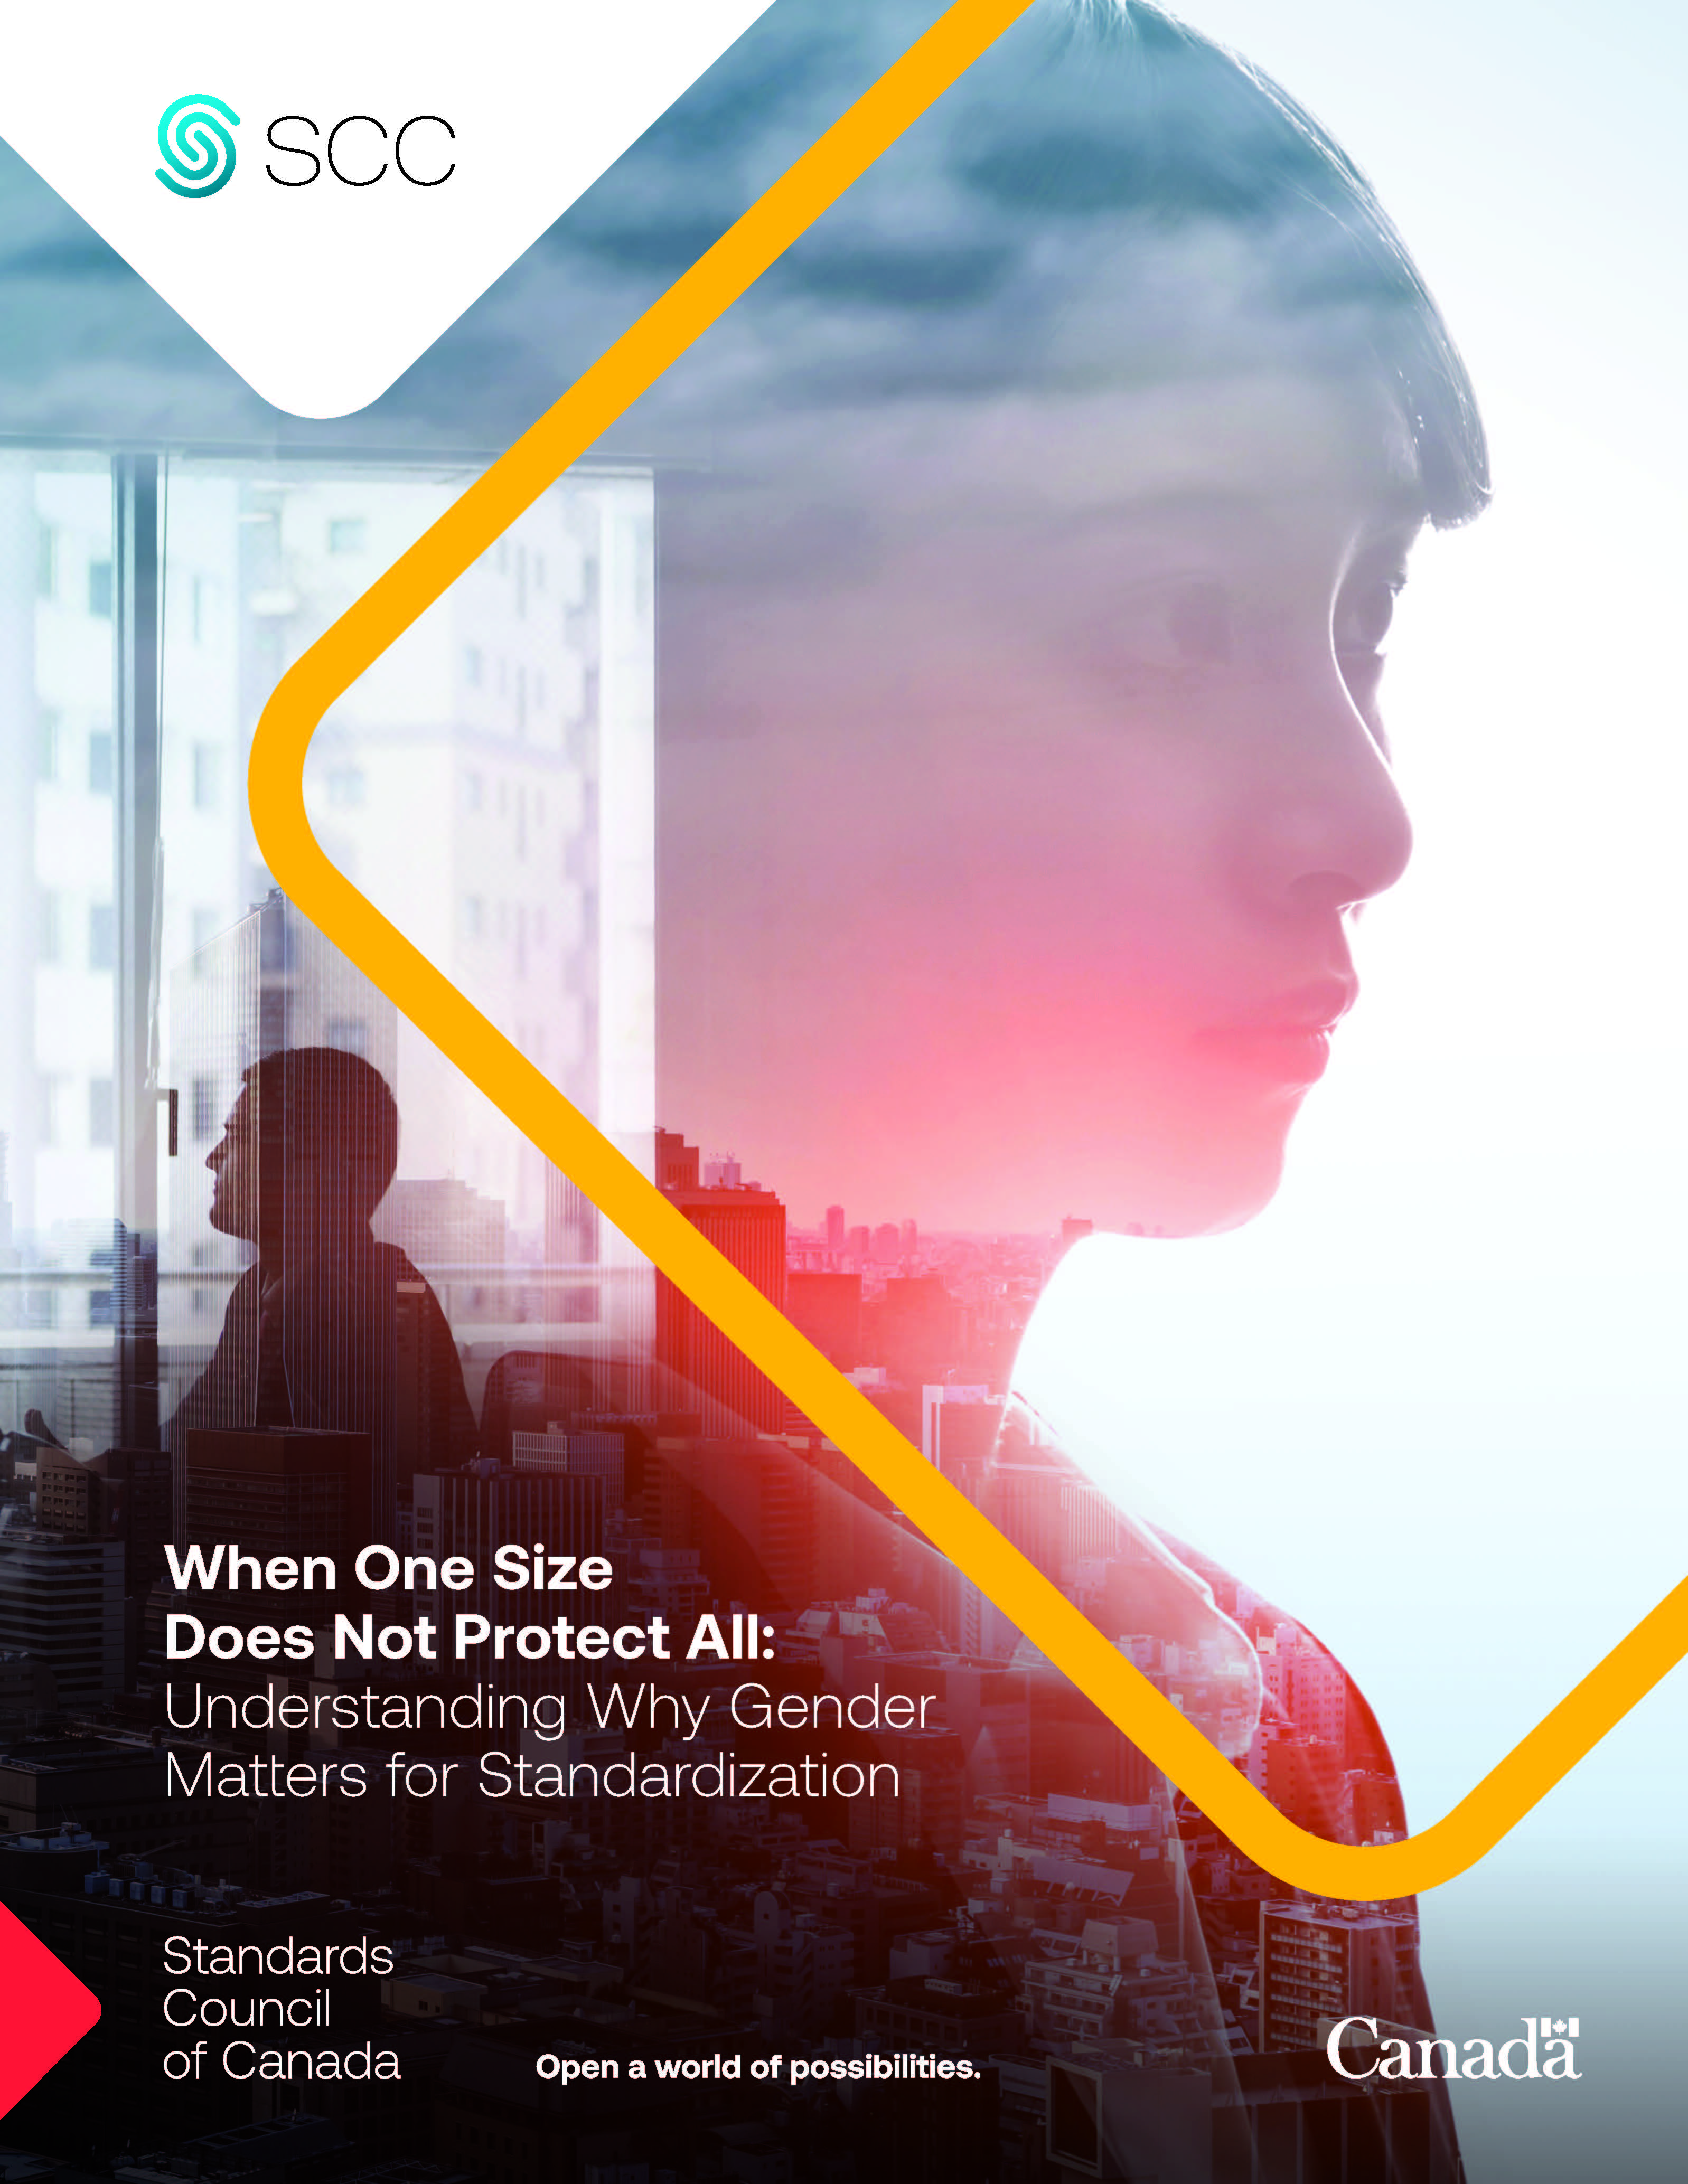 Report – When One Size Does Not Protect All: Understanding Why Gender Matters for Standardization